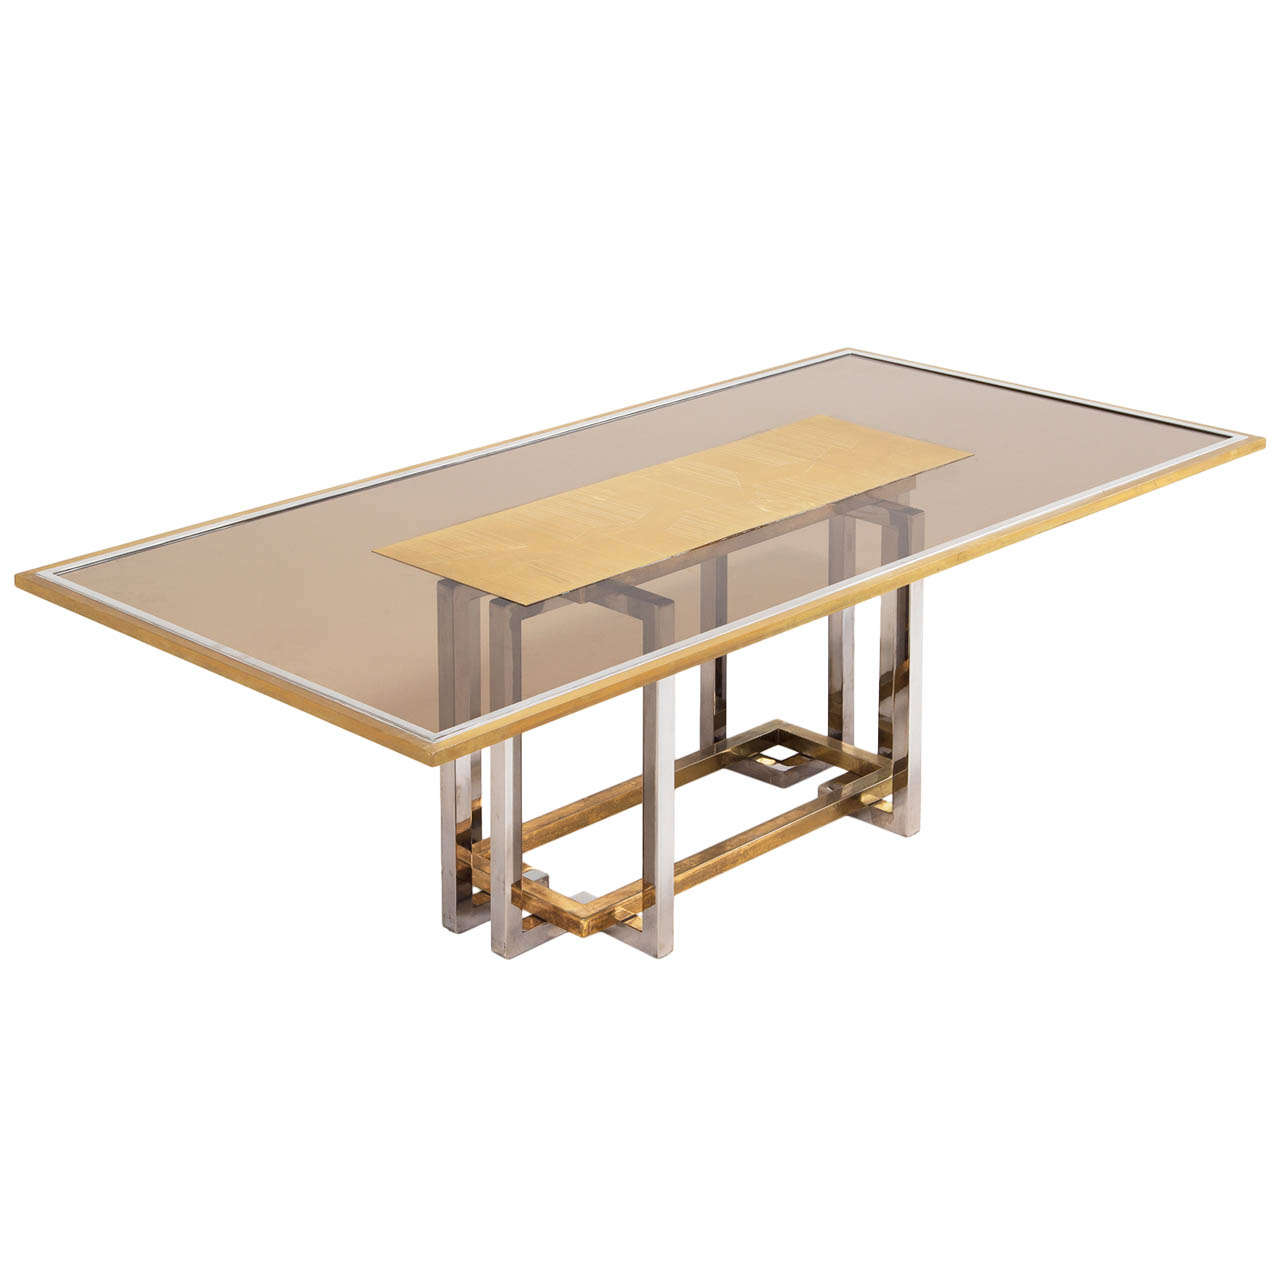 Italian Chrome And Brass Dining Table With Elegant Glass Top For Sale At 1stdibs